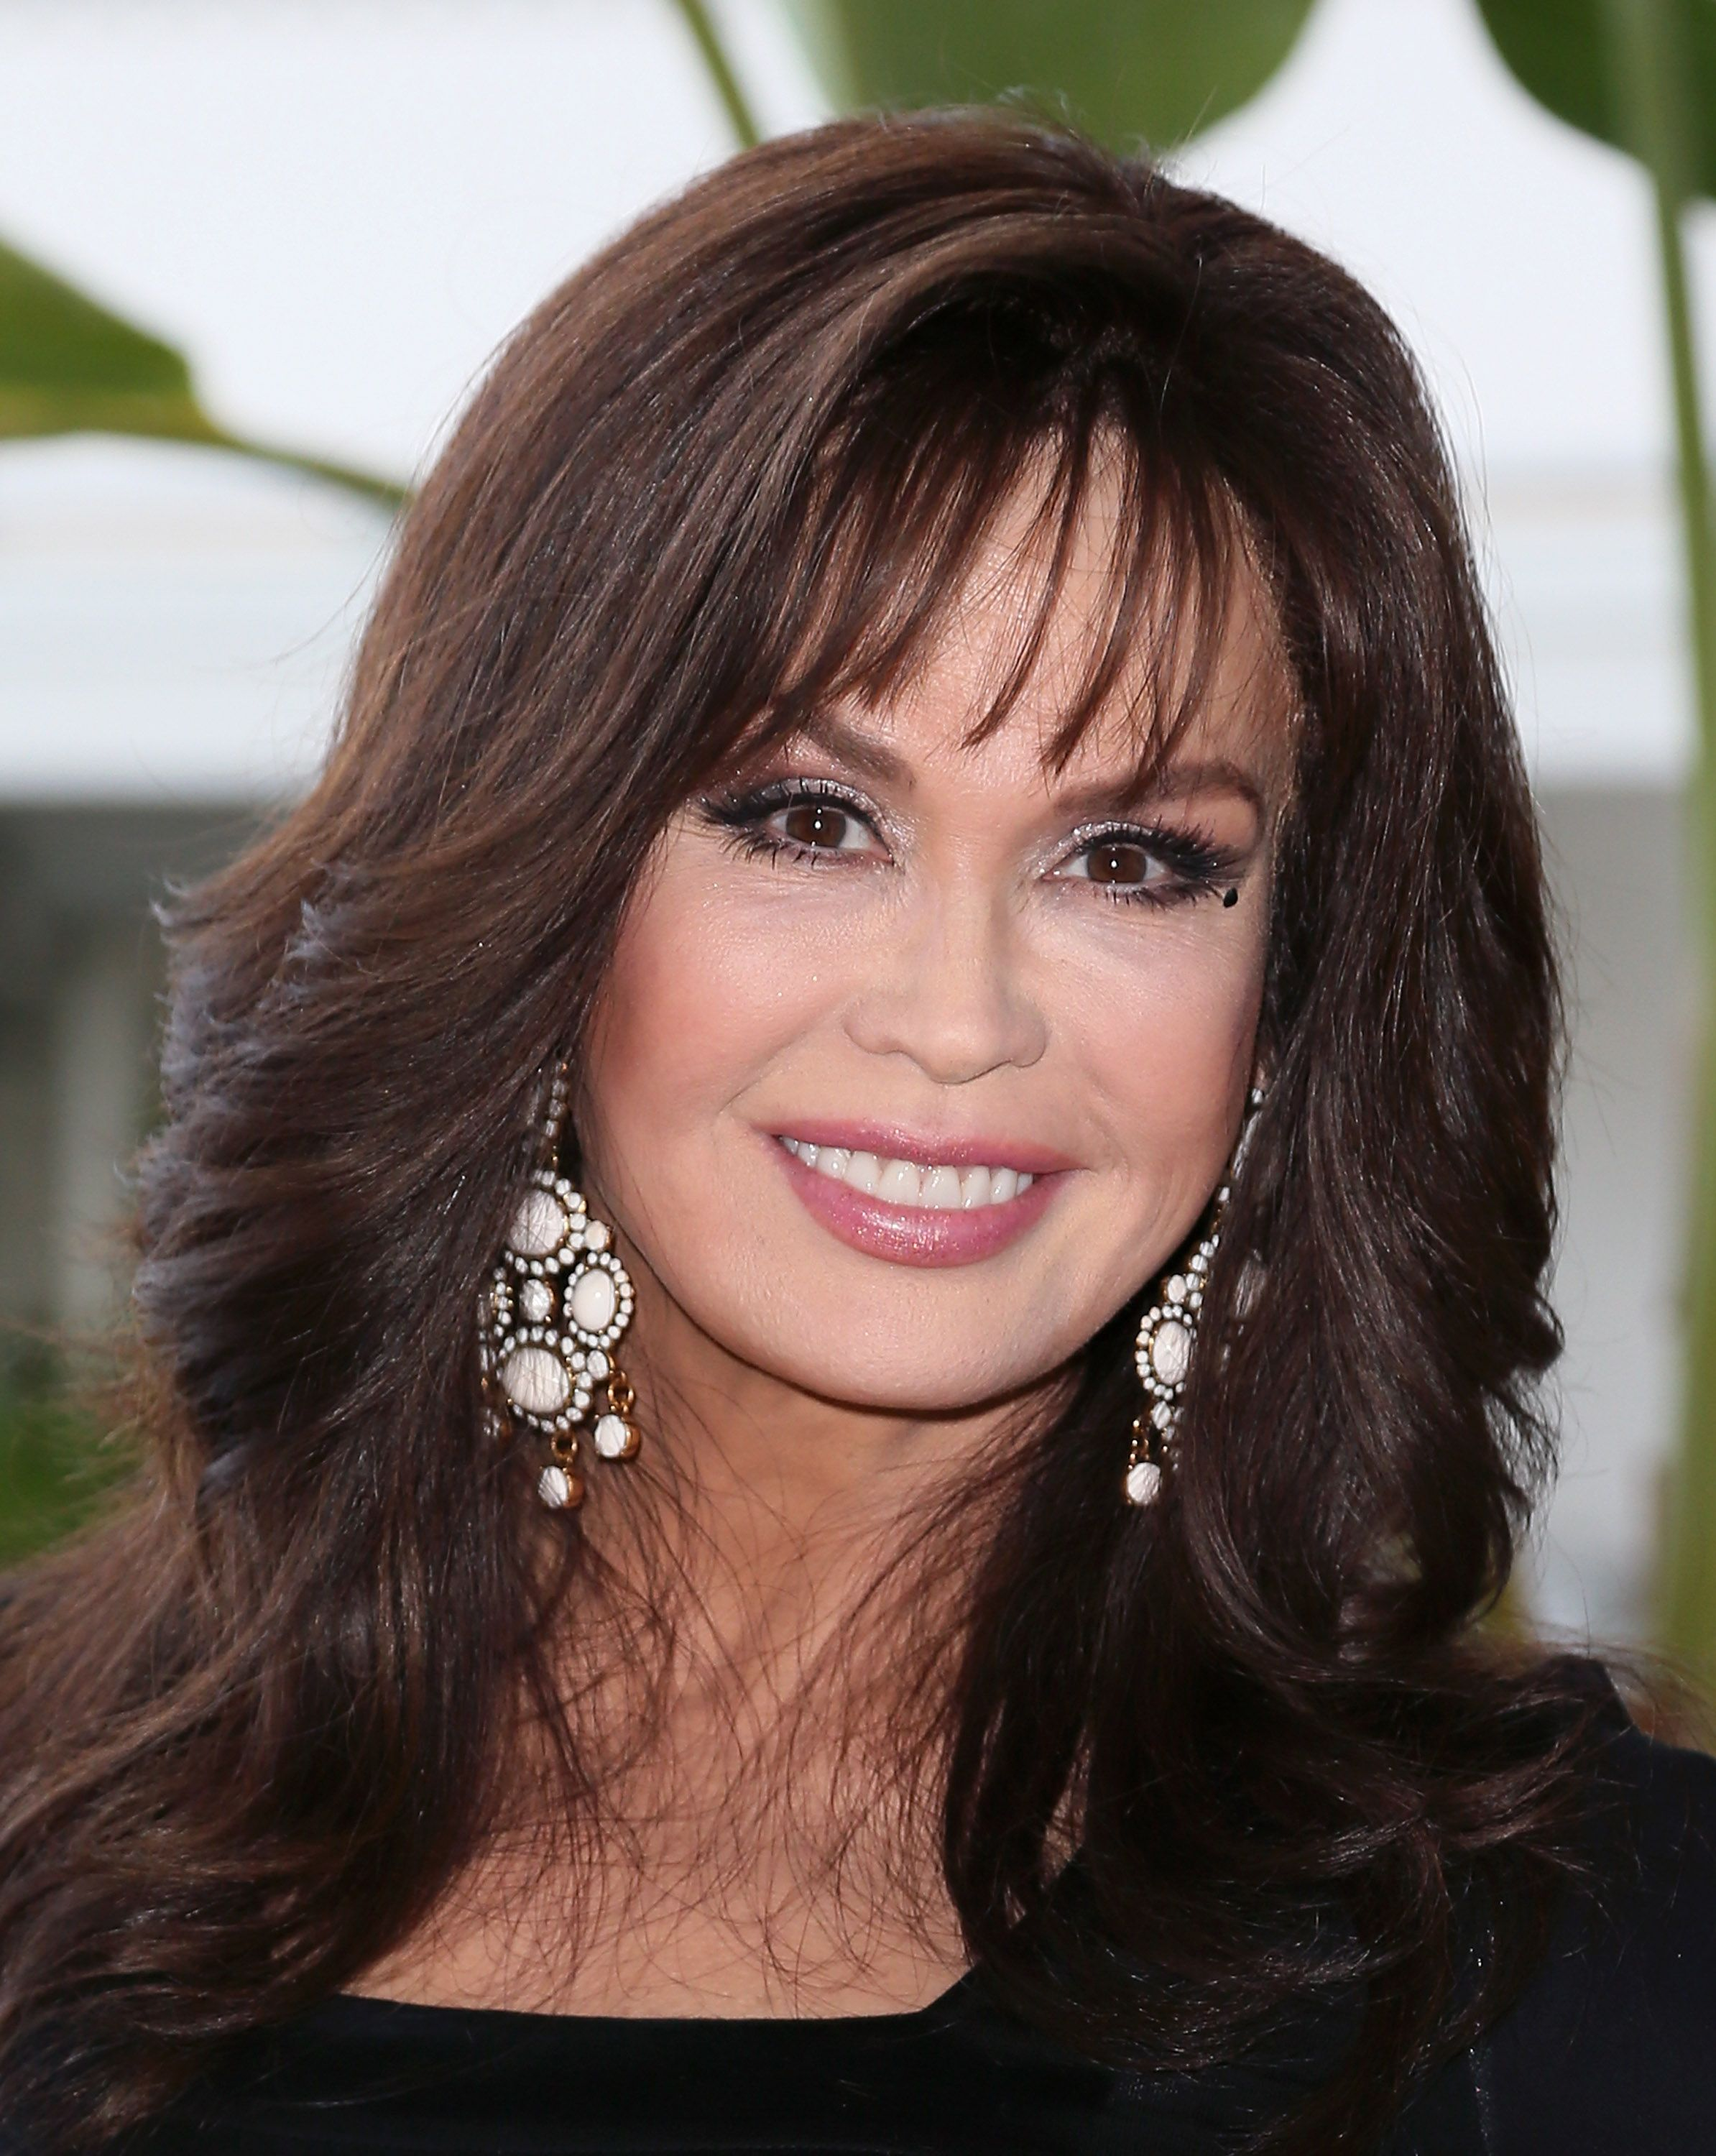 marie osmond 1973marie osmond this is the way that i feel, marie osmond doll, marie osmond instagram, marie osmond 1973, marie osmond adora belle, marie osmond height weight, marie osmond rose, marie osmond paper roses, marie osmond faints, marie osmond youtube videos, marie osmond, marie osmond husband, marie osmond facebook, marie osmond wikipedia, marie osmond net worth, marie osmond plastic surgery, marie osmond age, marie osmond son, marie osmond measurements, marie osmond wedding